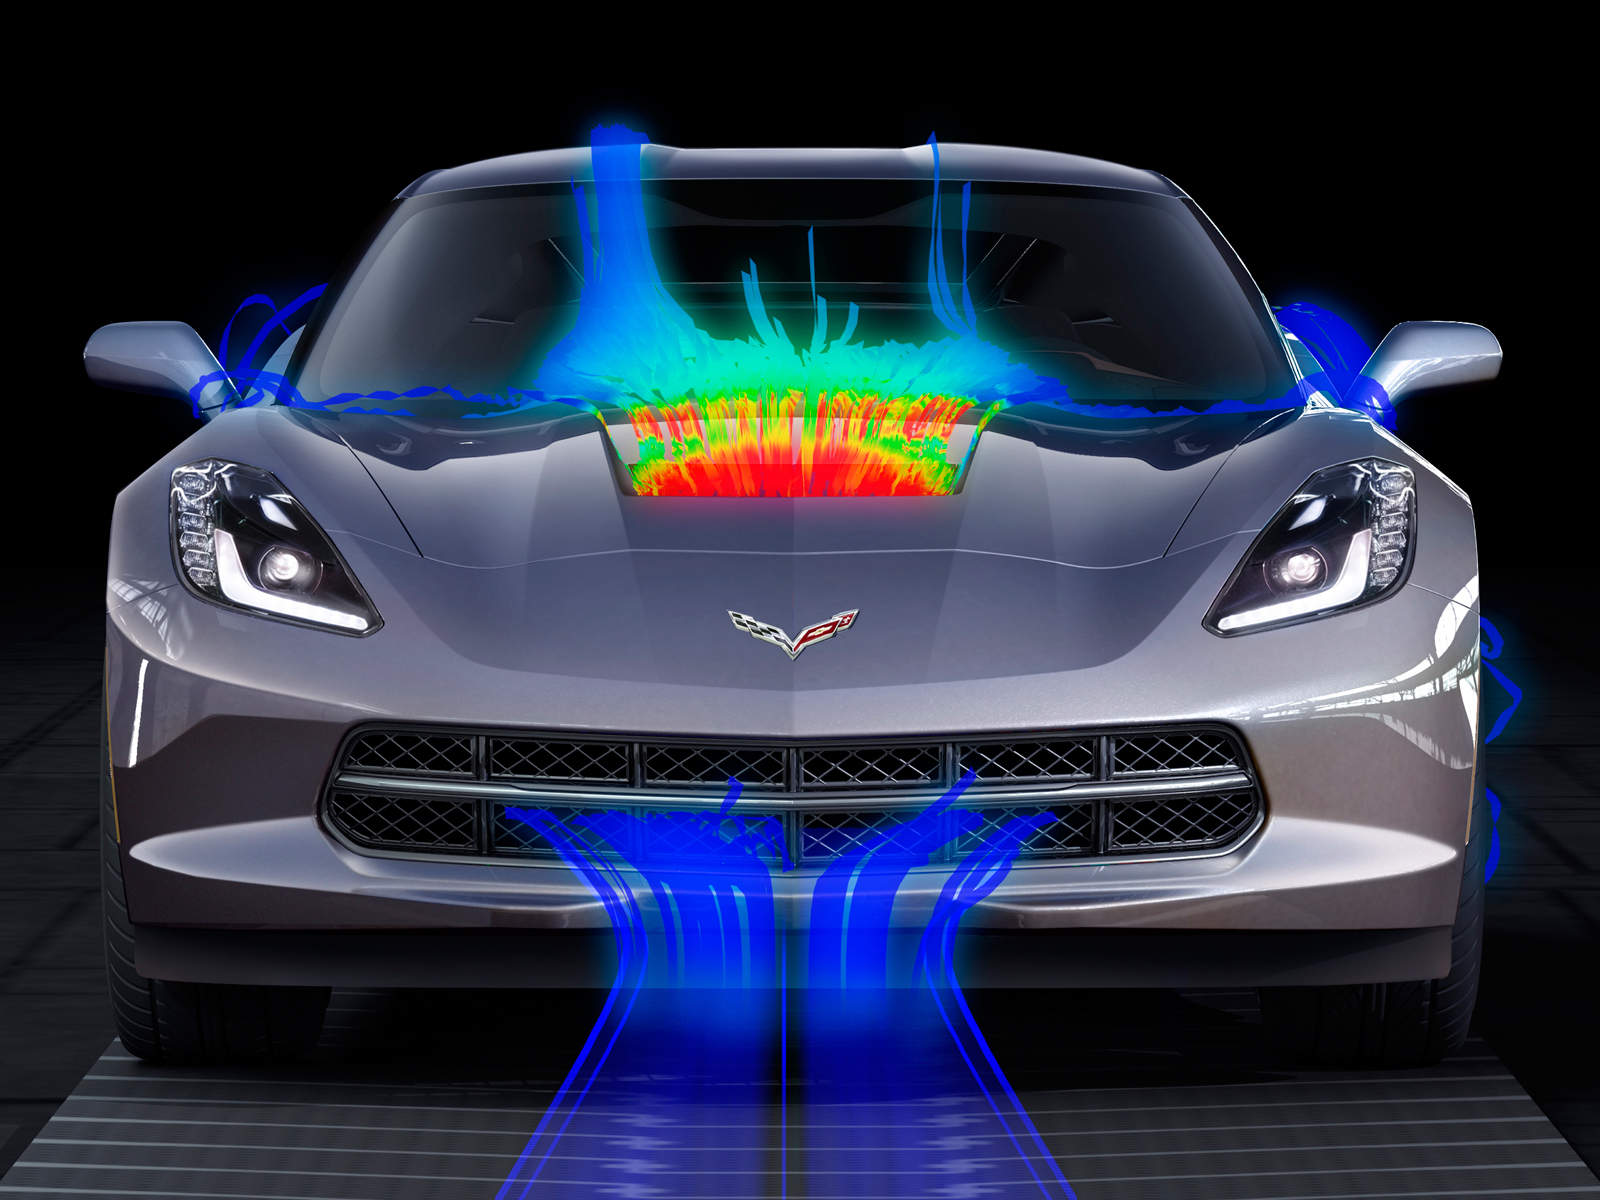 2014-chevy-corvette-stingray-c7-hood-vent-model-13.jpg